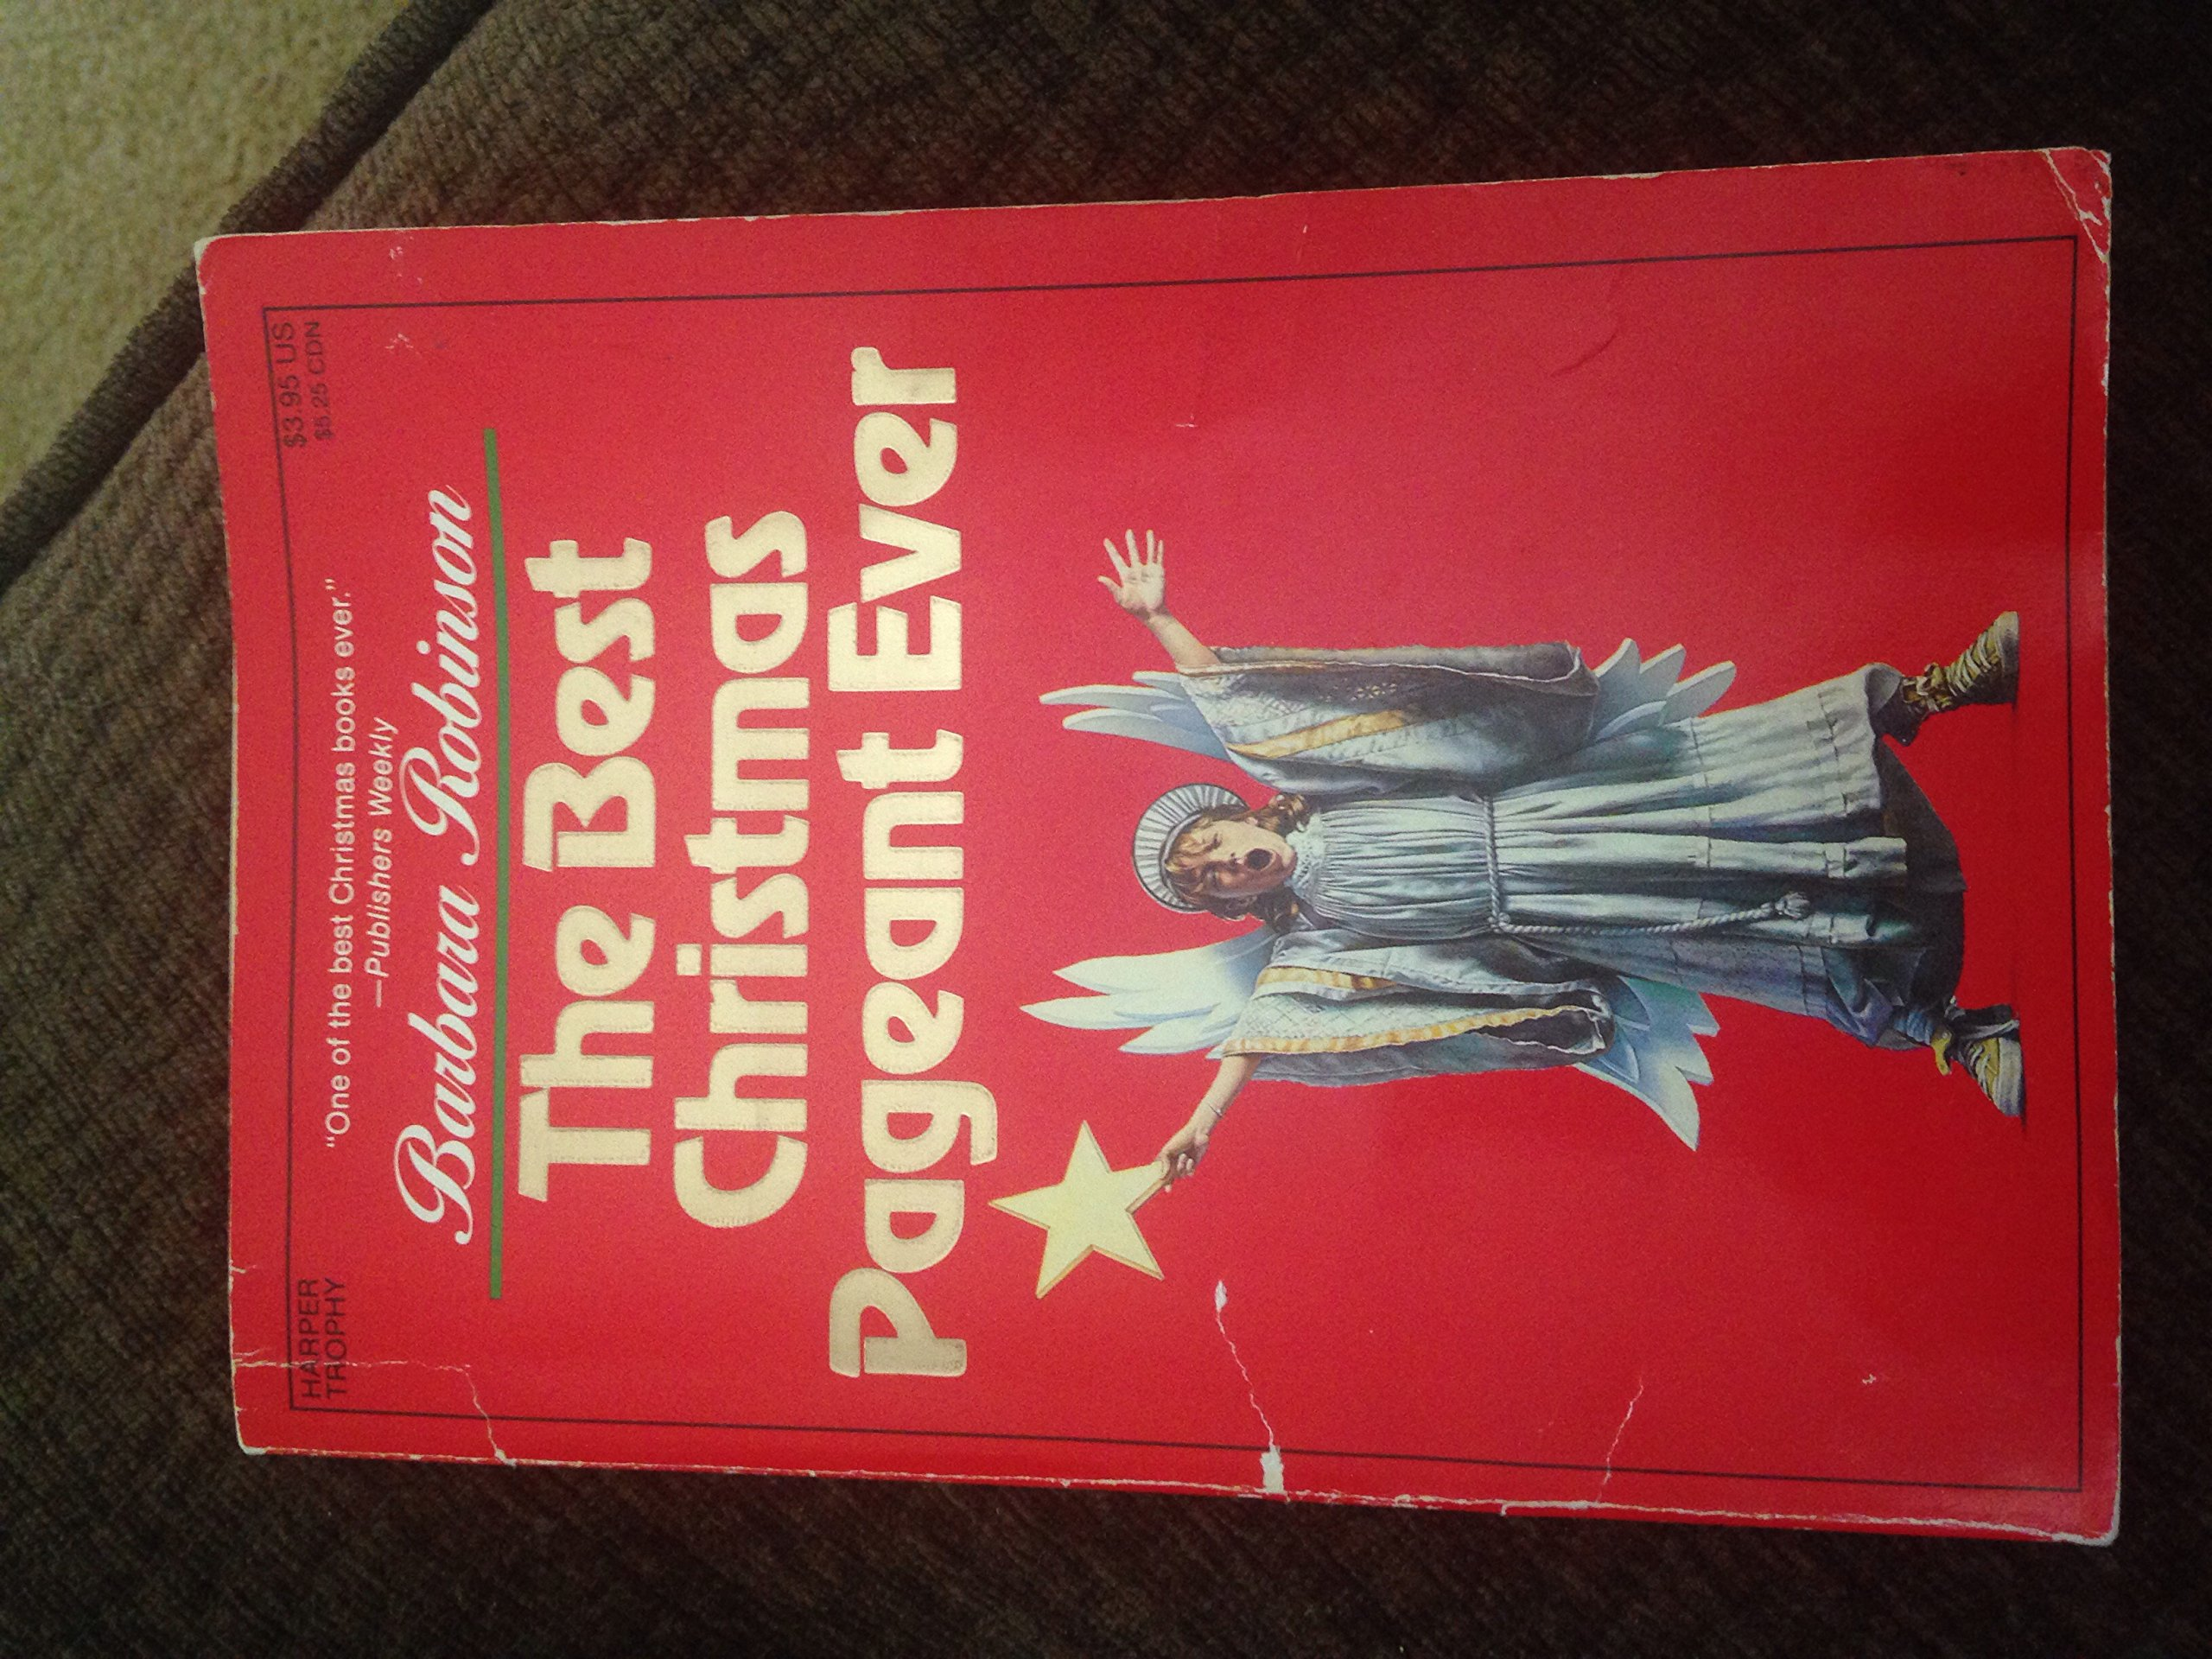 the best christmas pageant ever first edition robinsonb 0351987650987 amazoncom books - The Best Christmas Pageant Ever Book